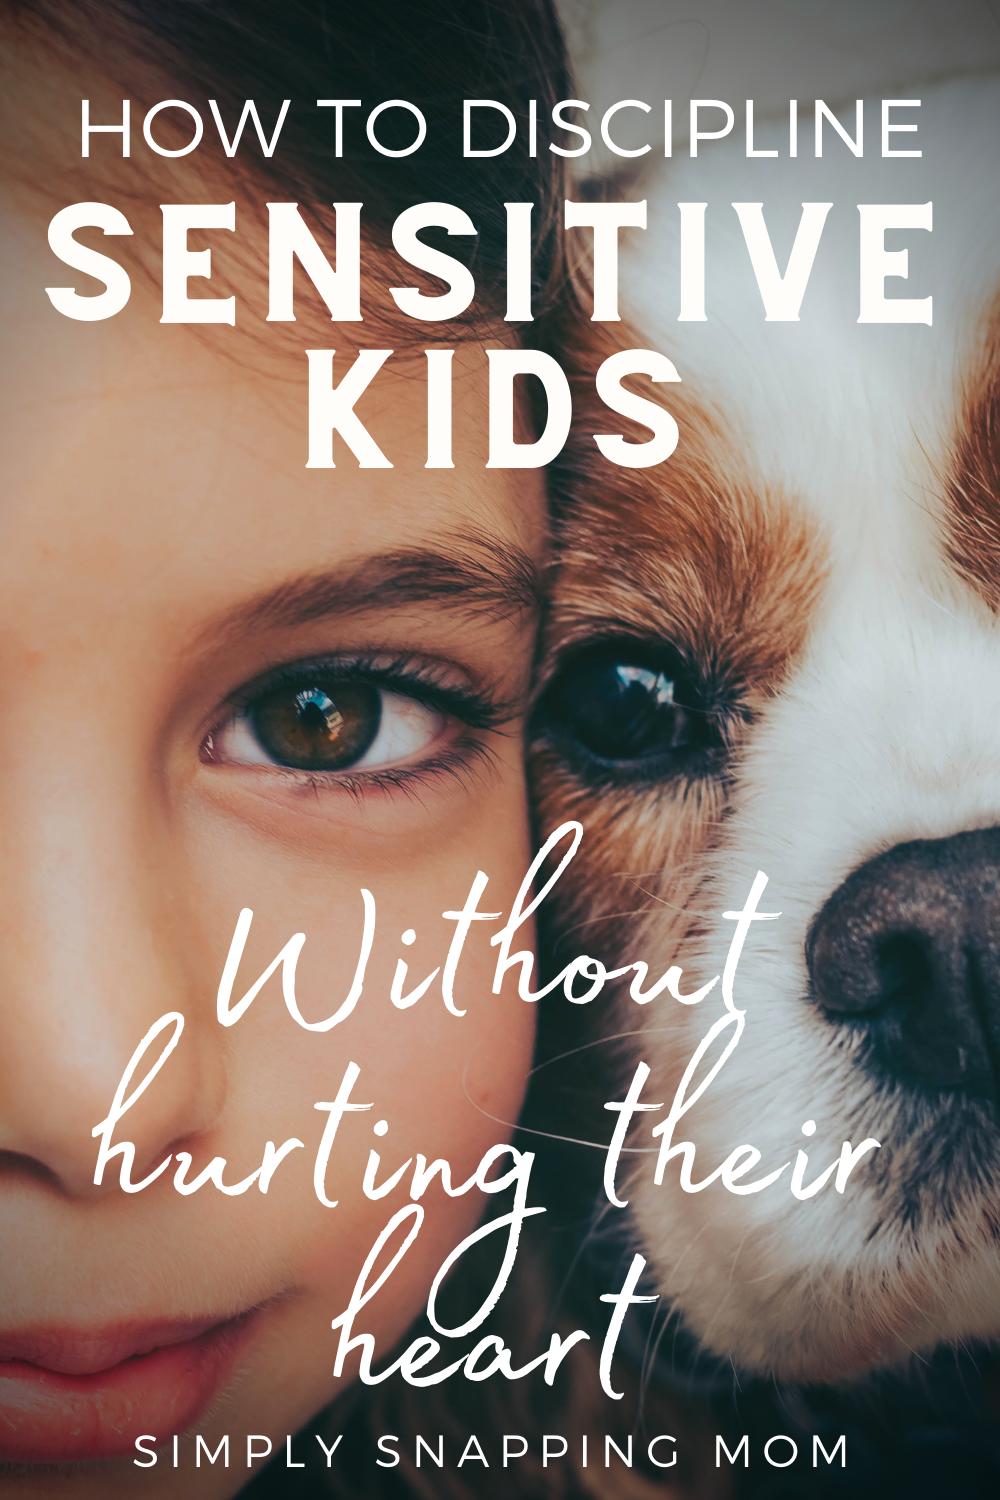 How to Discipline Sensitive Kids, without hurting their heart